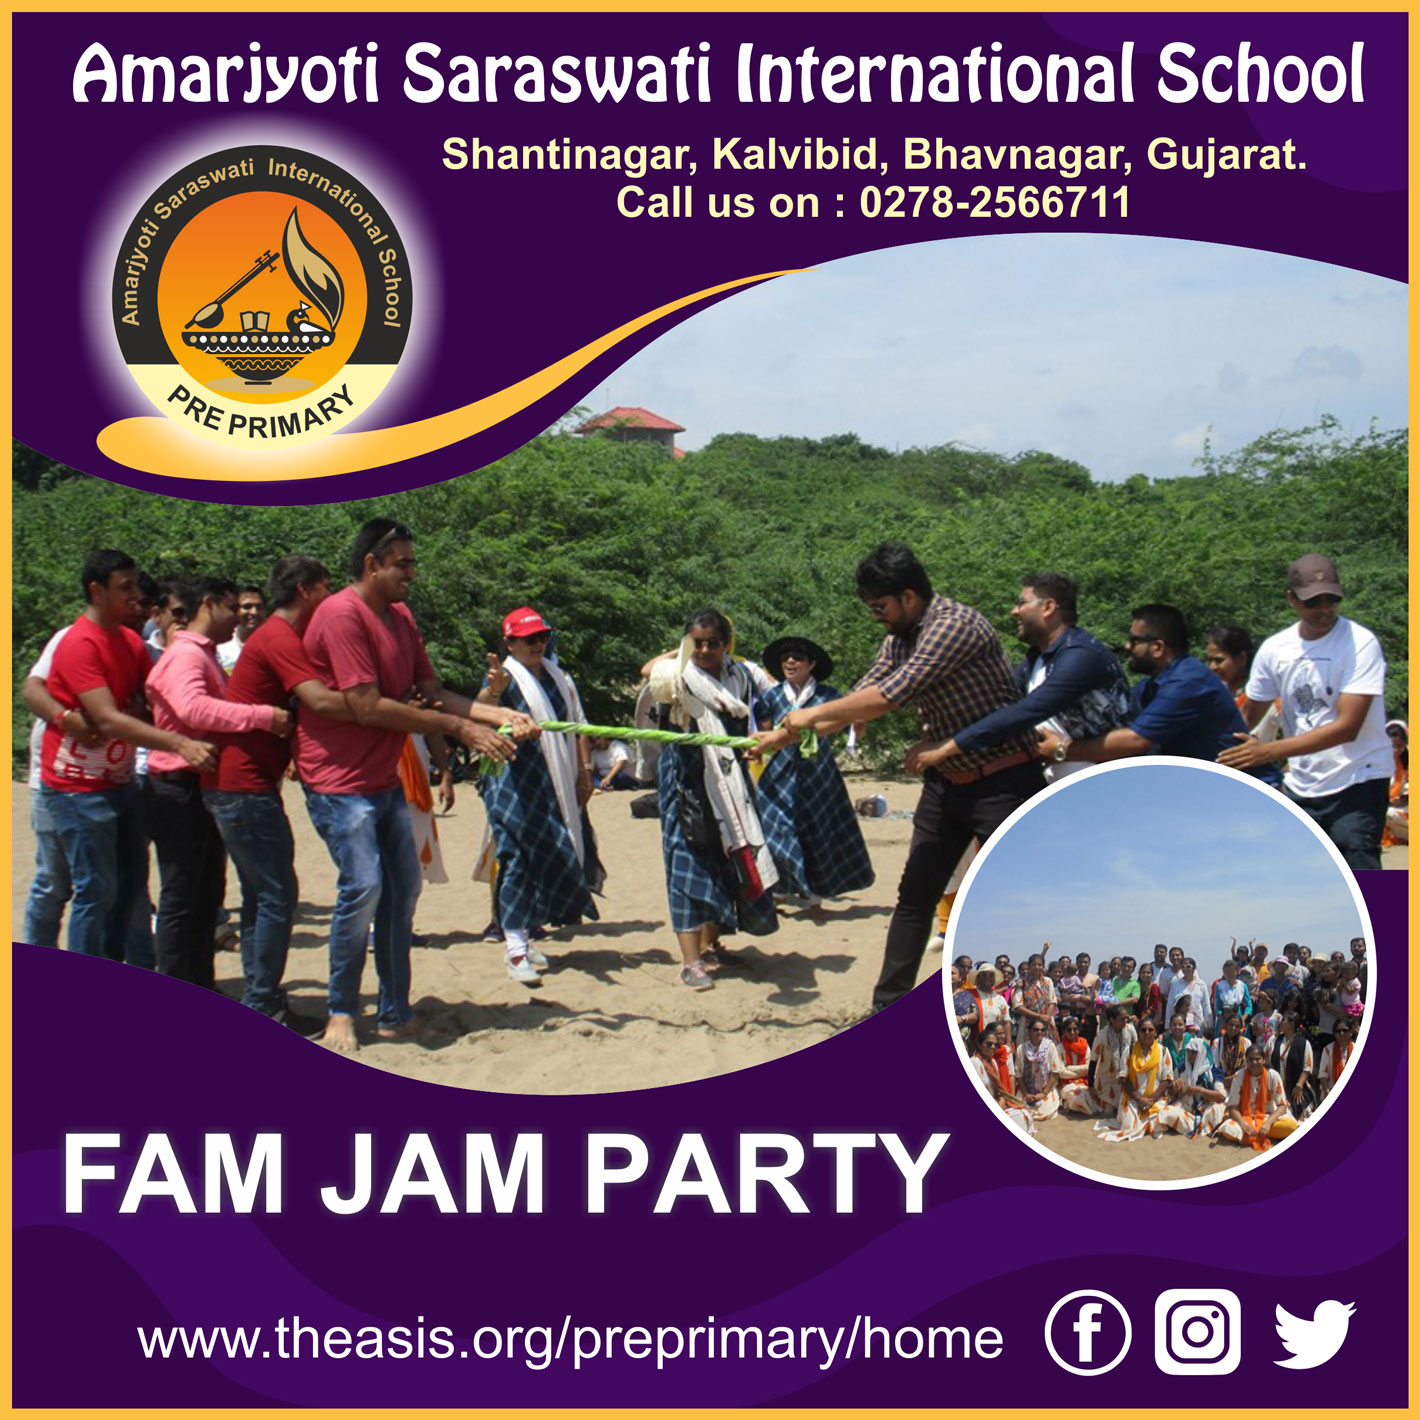 Fam Jam party Amarjyoti Saraswati International School Amarjyoti Gohil Ankit Akolkar The ASIS Group